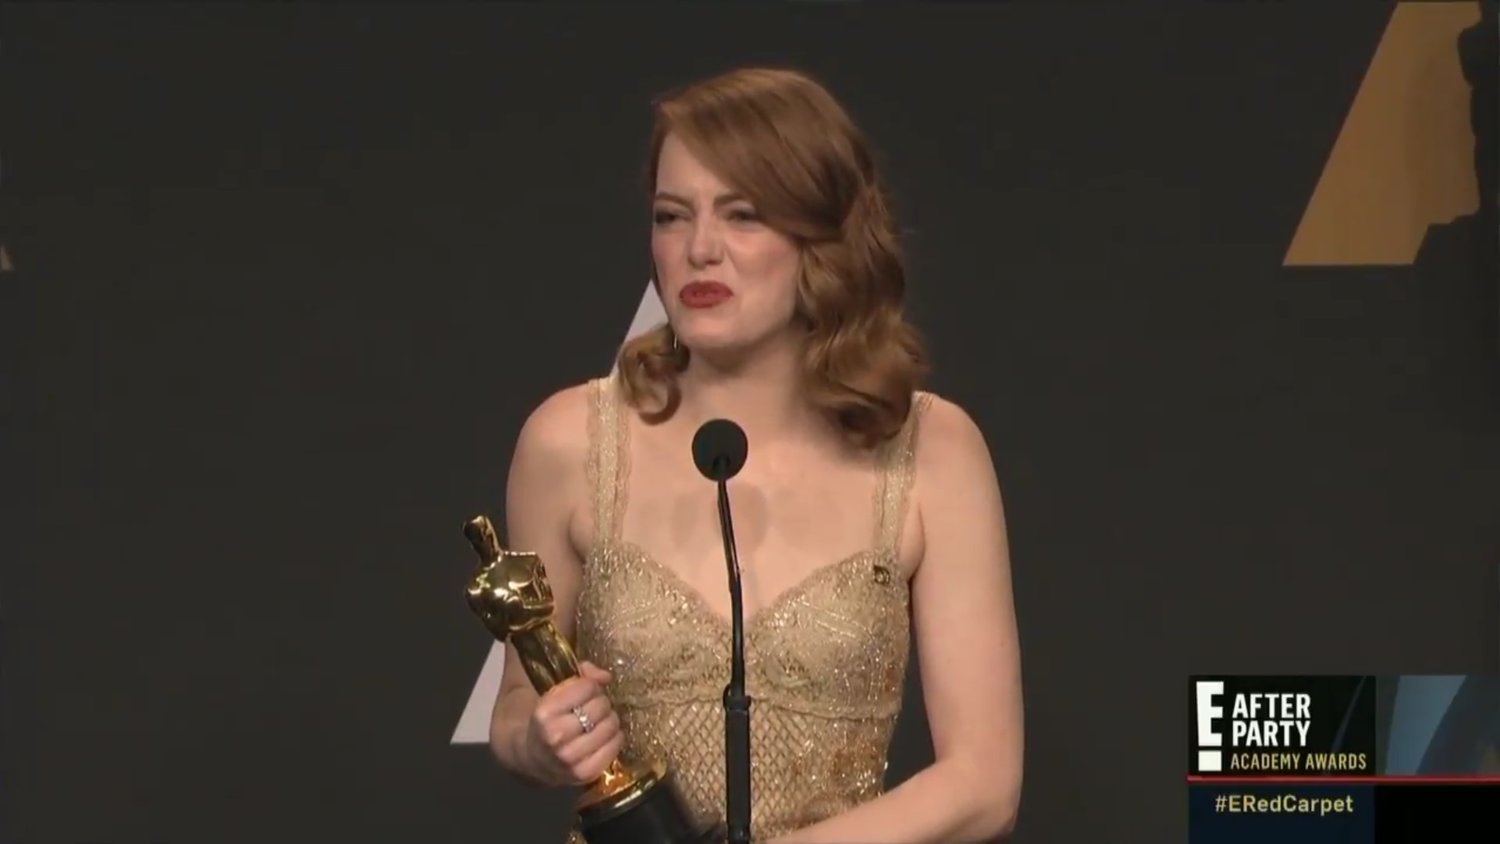 Watch: Emma Stone's Post Oscar Reaction to Best Picture Controversy